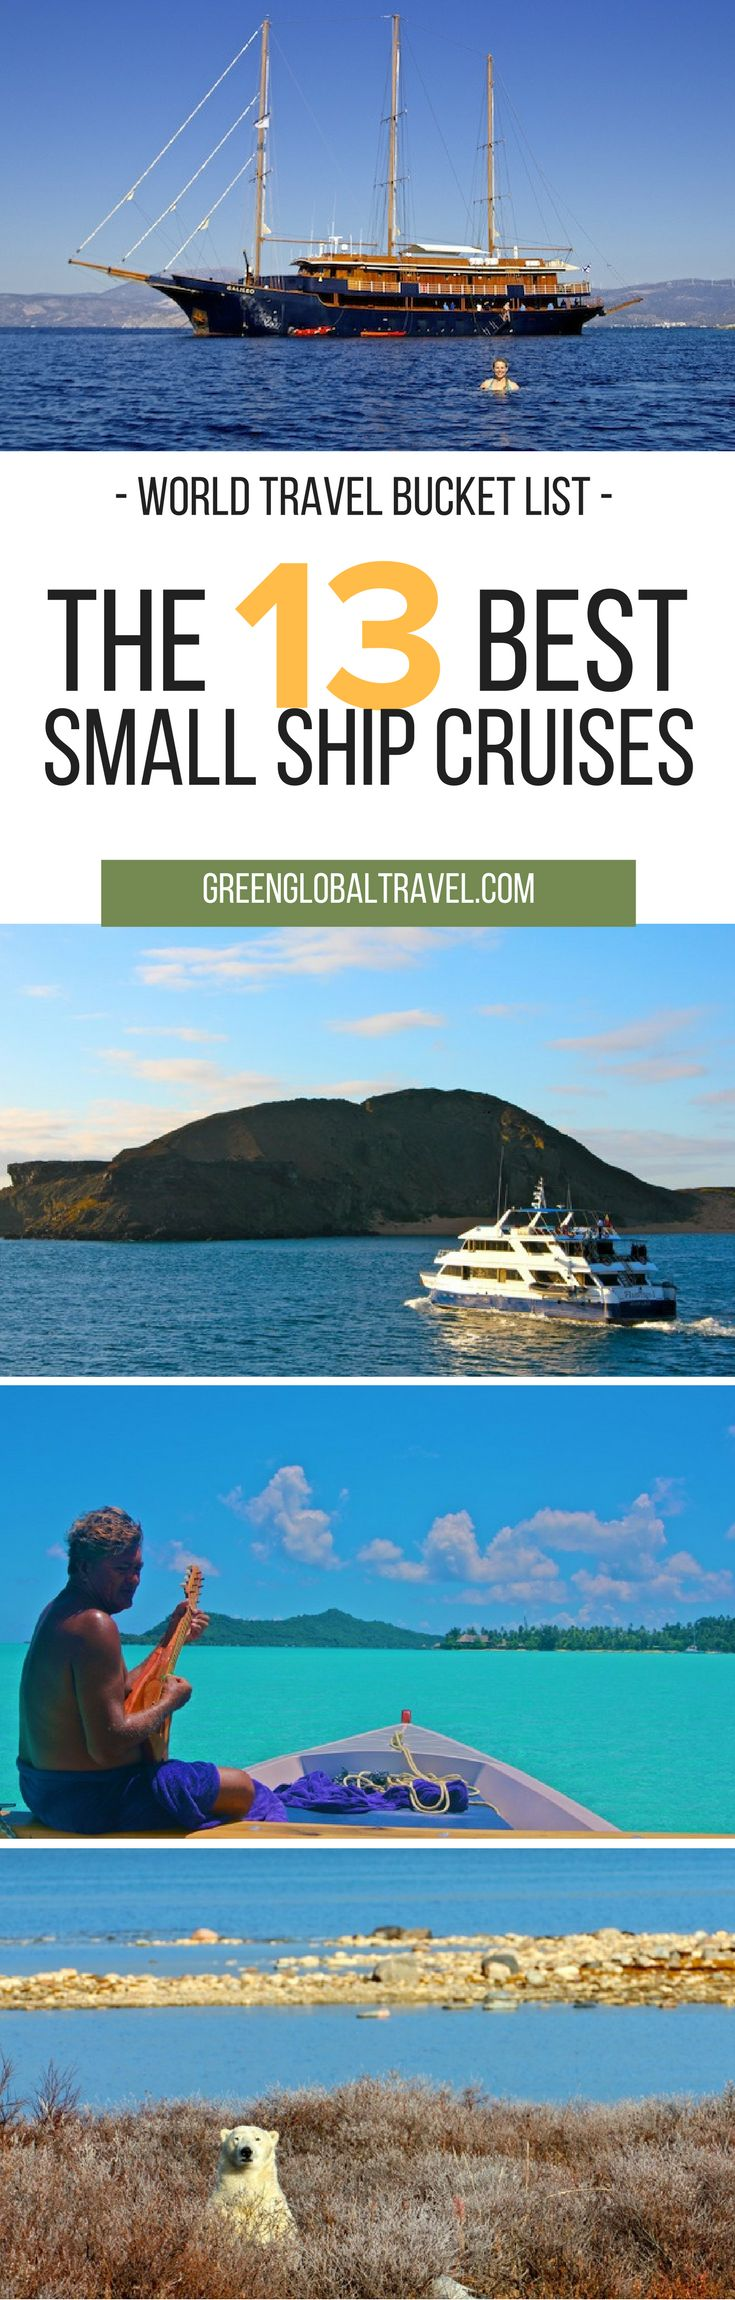 Here is a list about the 13 best small ship cruises for your world travel bucket list! #bucketlist #worldtravel via @greenglobaltrvl